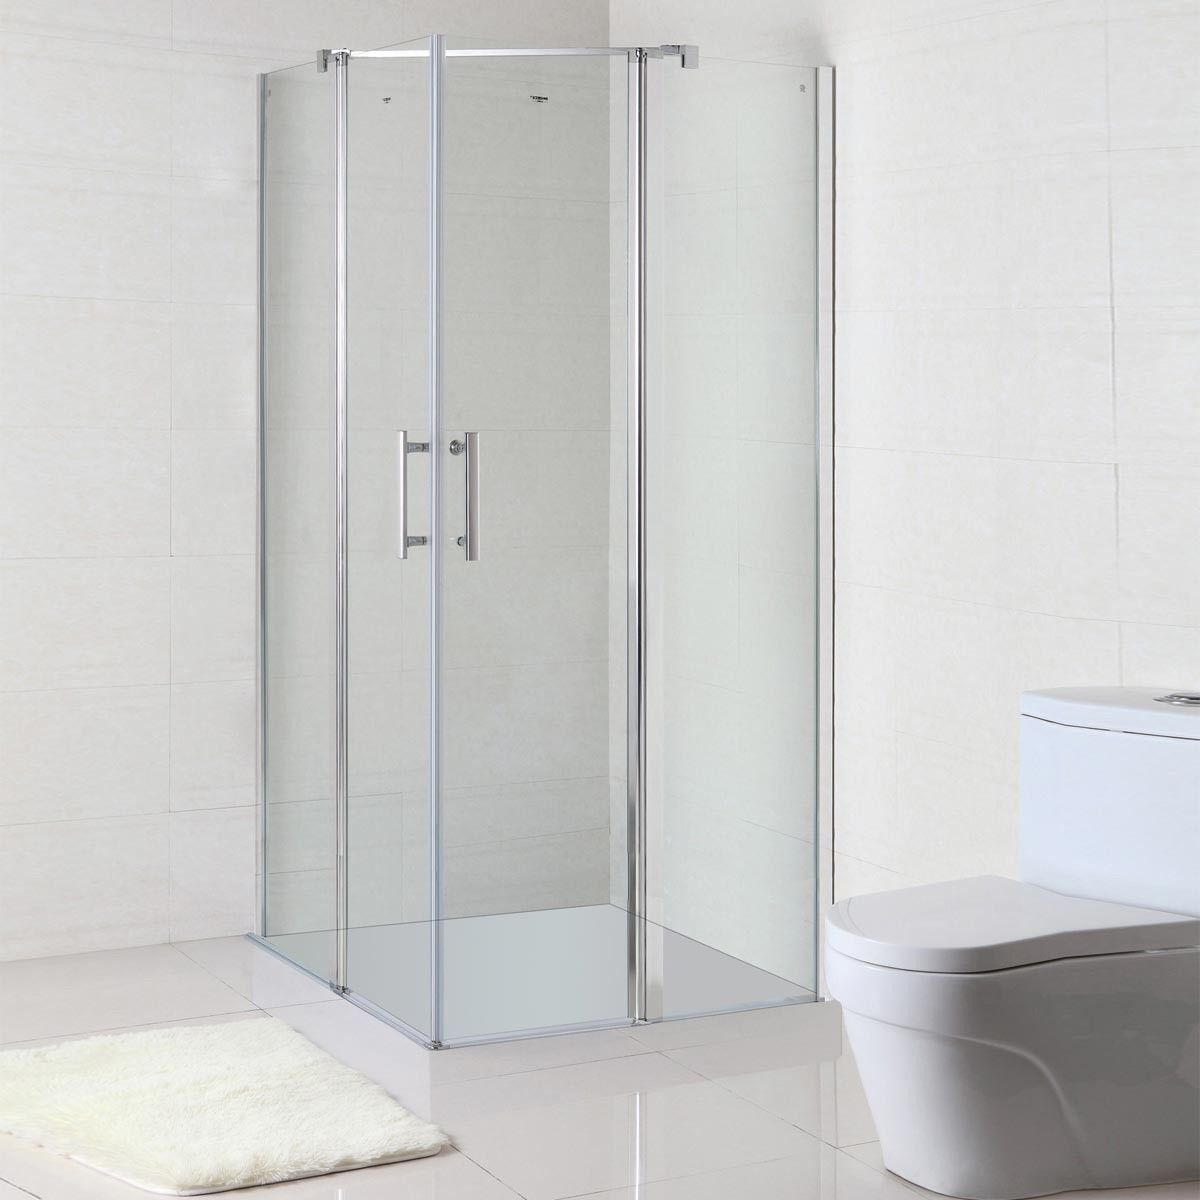 36 x 36 In. (90 x 90 cm) Clear Tempered Glass Stand Alone Shower ...